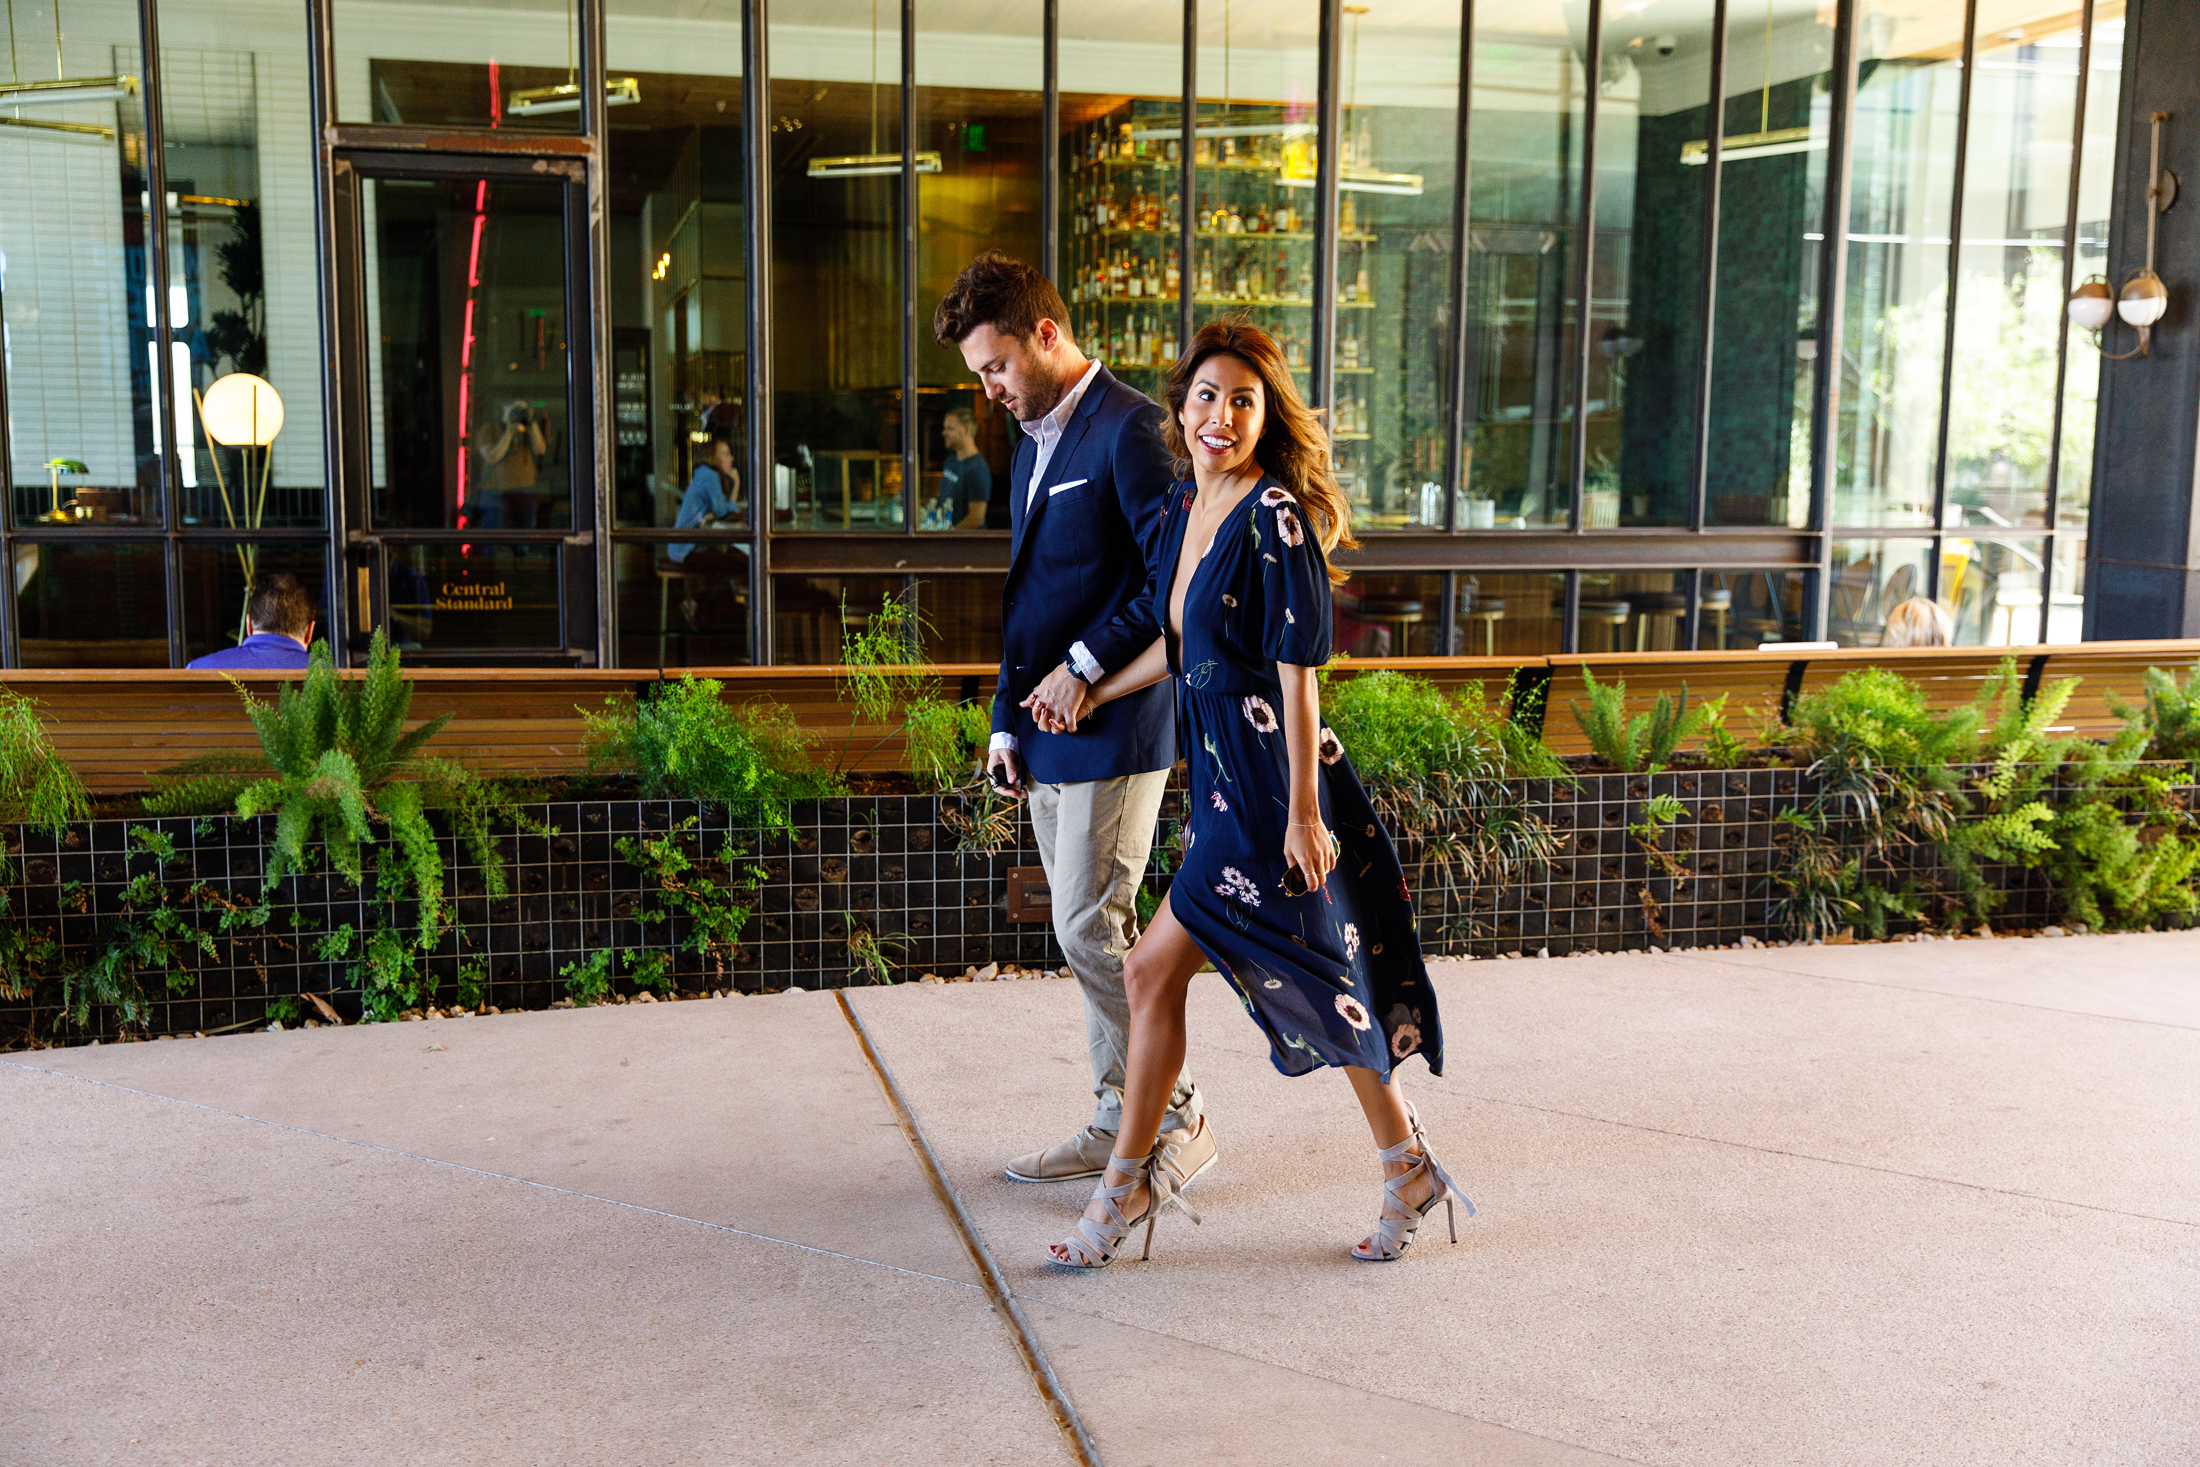 summer wedding outfits, couples wedding guest attire, everyday pursuits